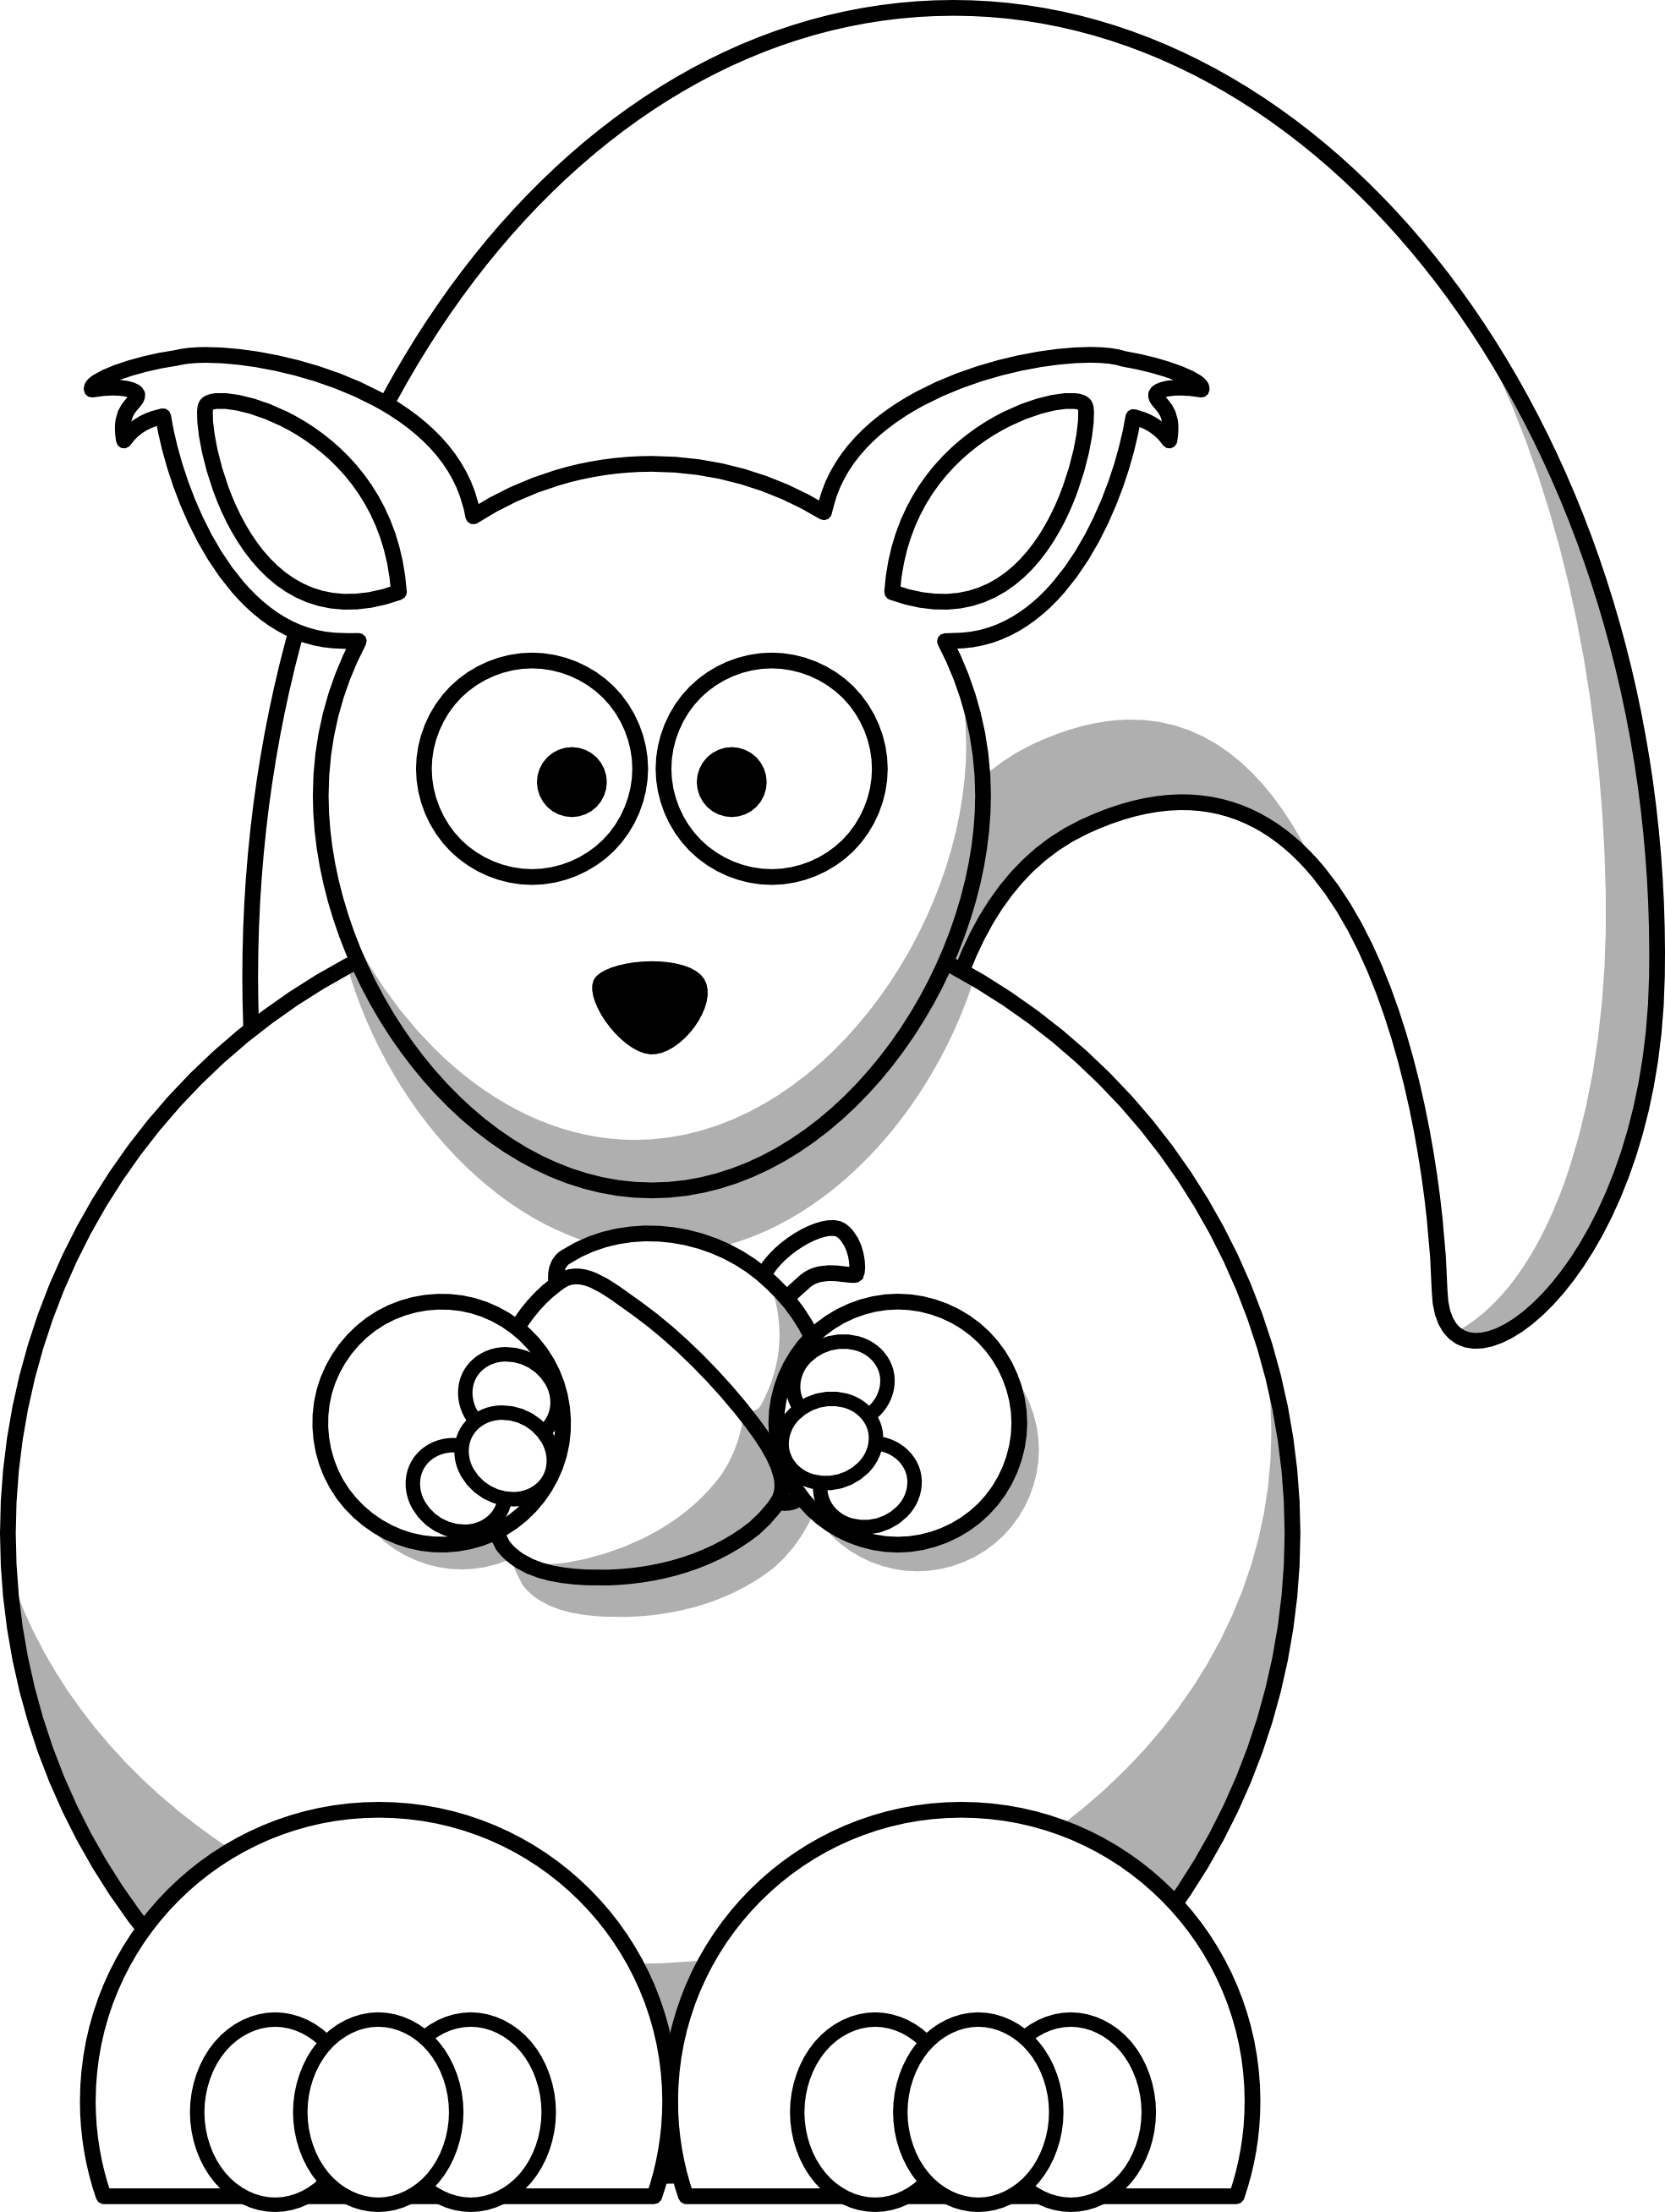 Ear clipart squirrel. Clip art black and